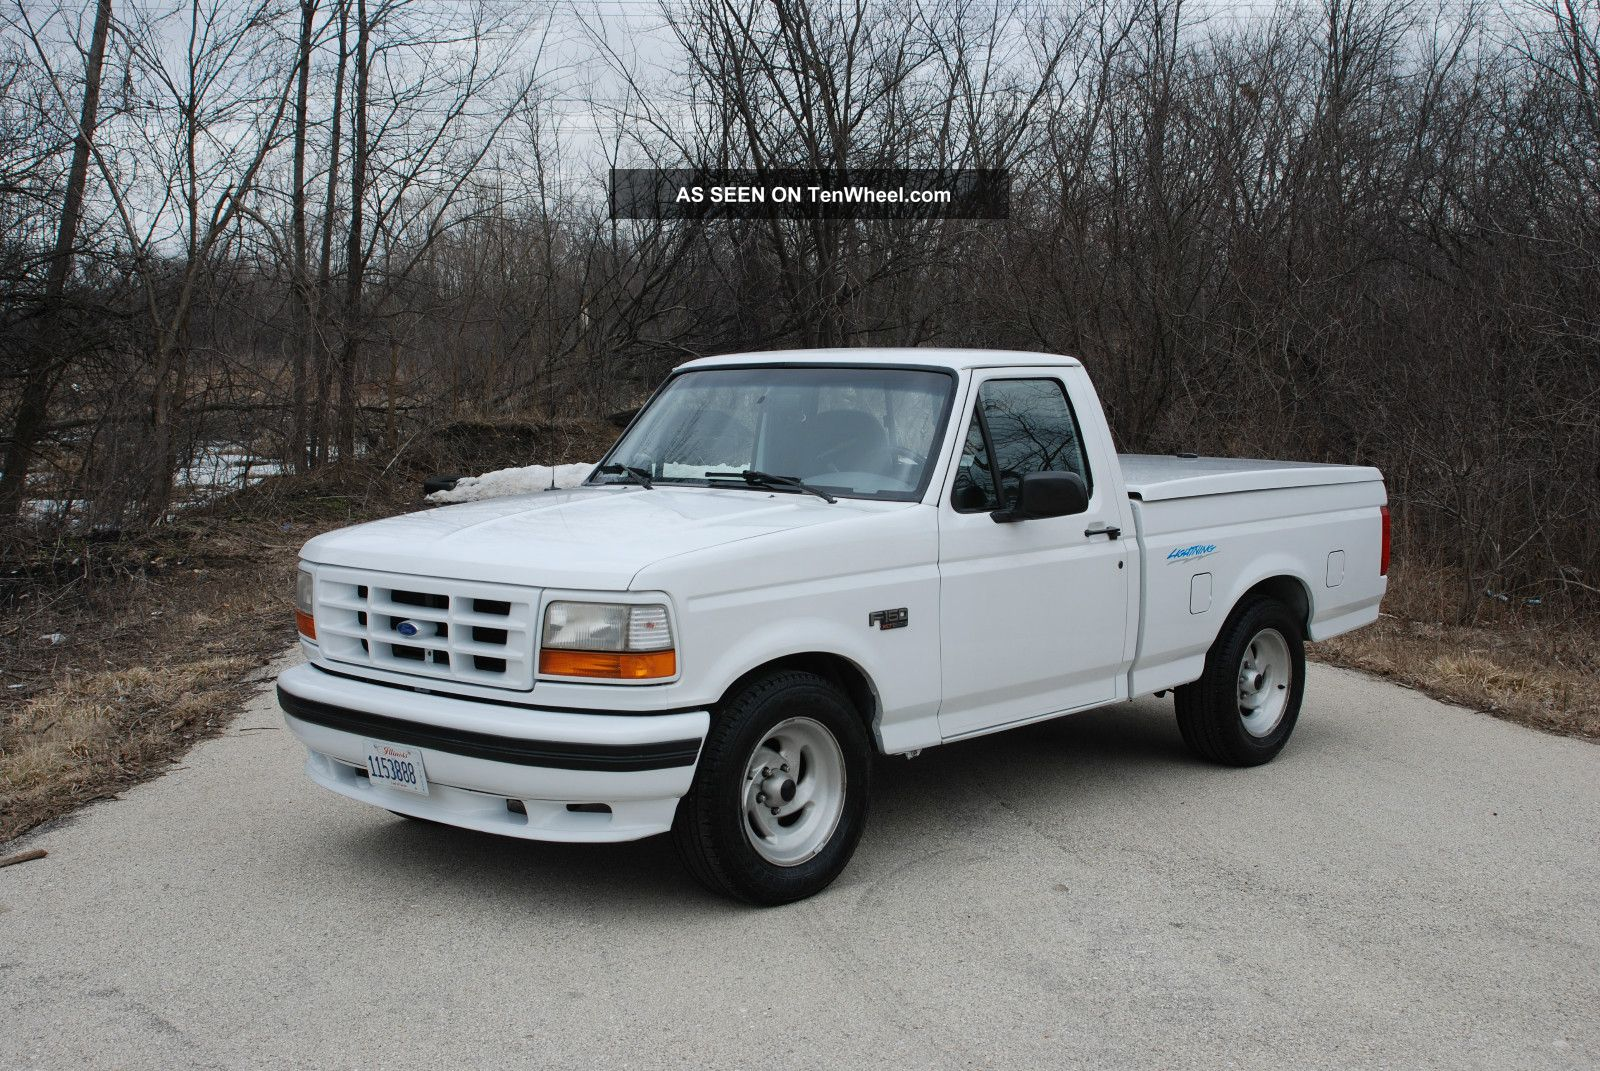 1995 Ford F-150 Svt Lightning #3